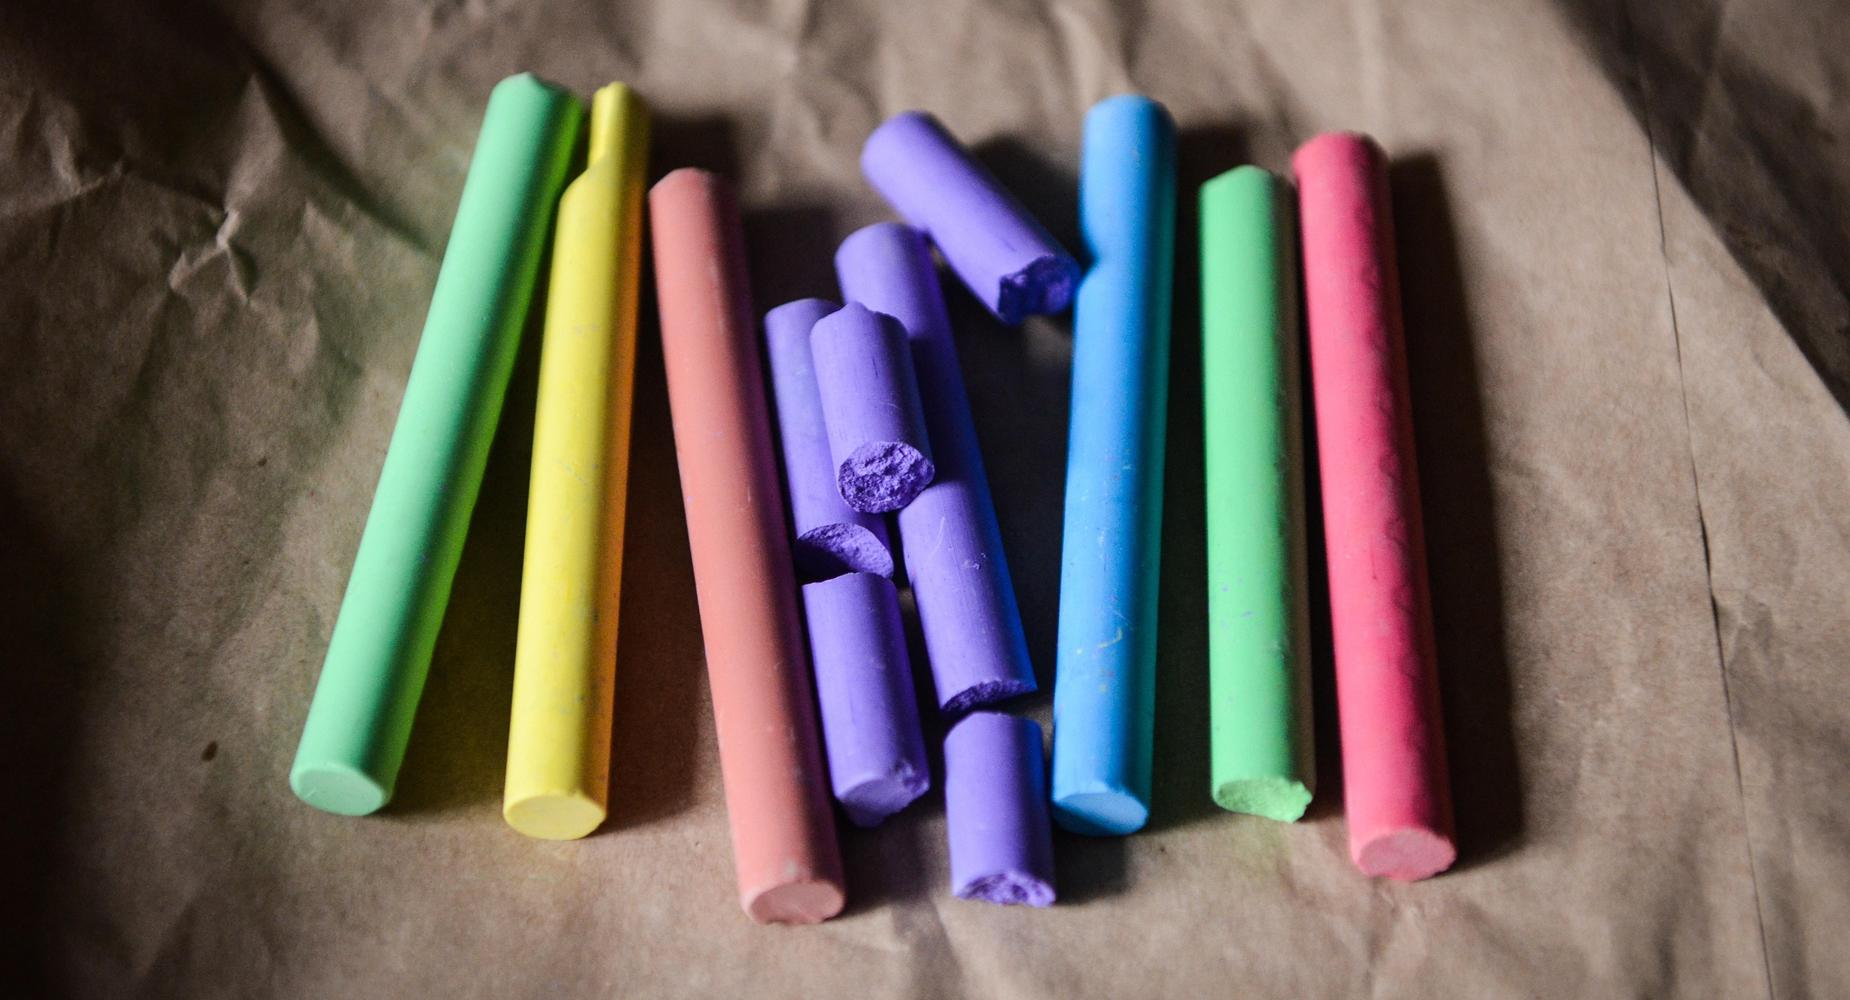 Colorful chalk is arranged in vertical lines on a paper bag